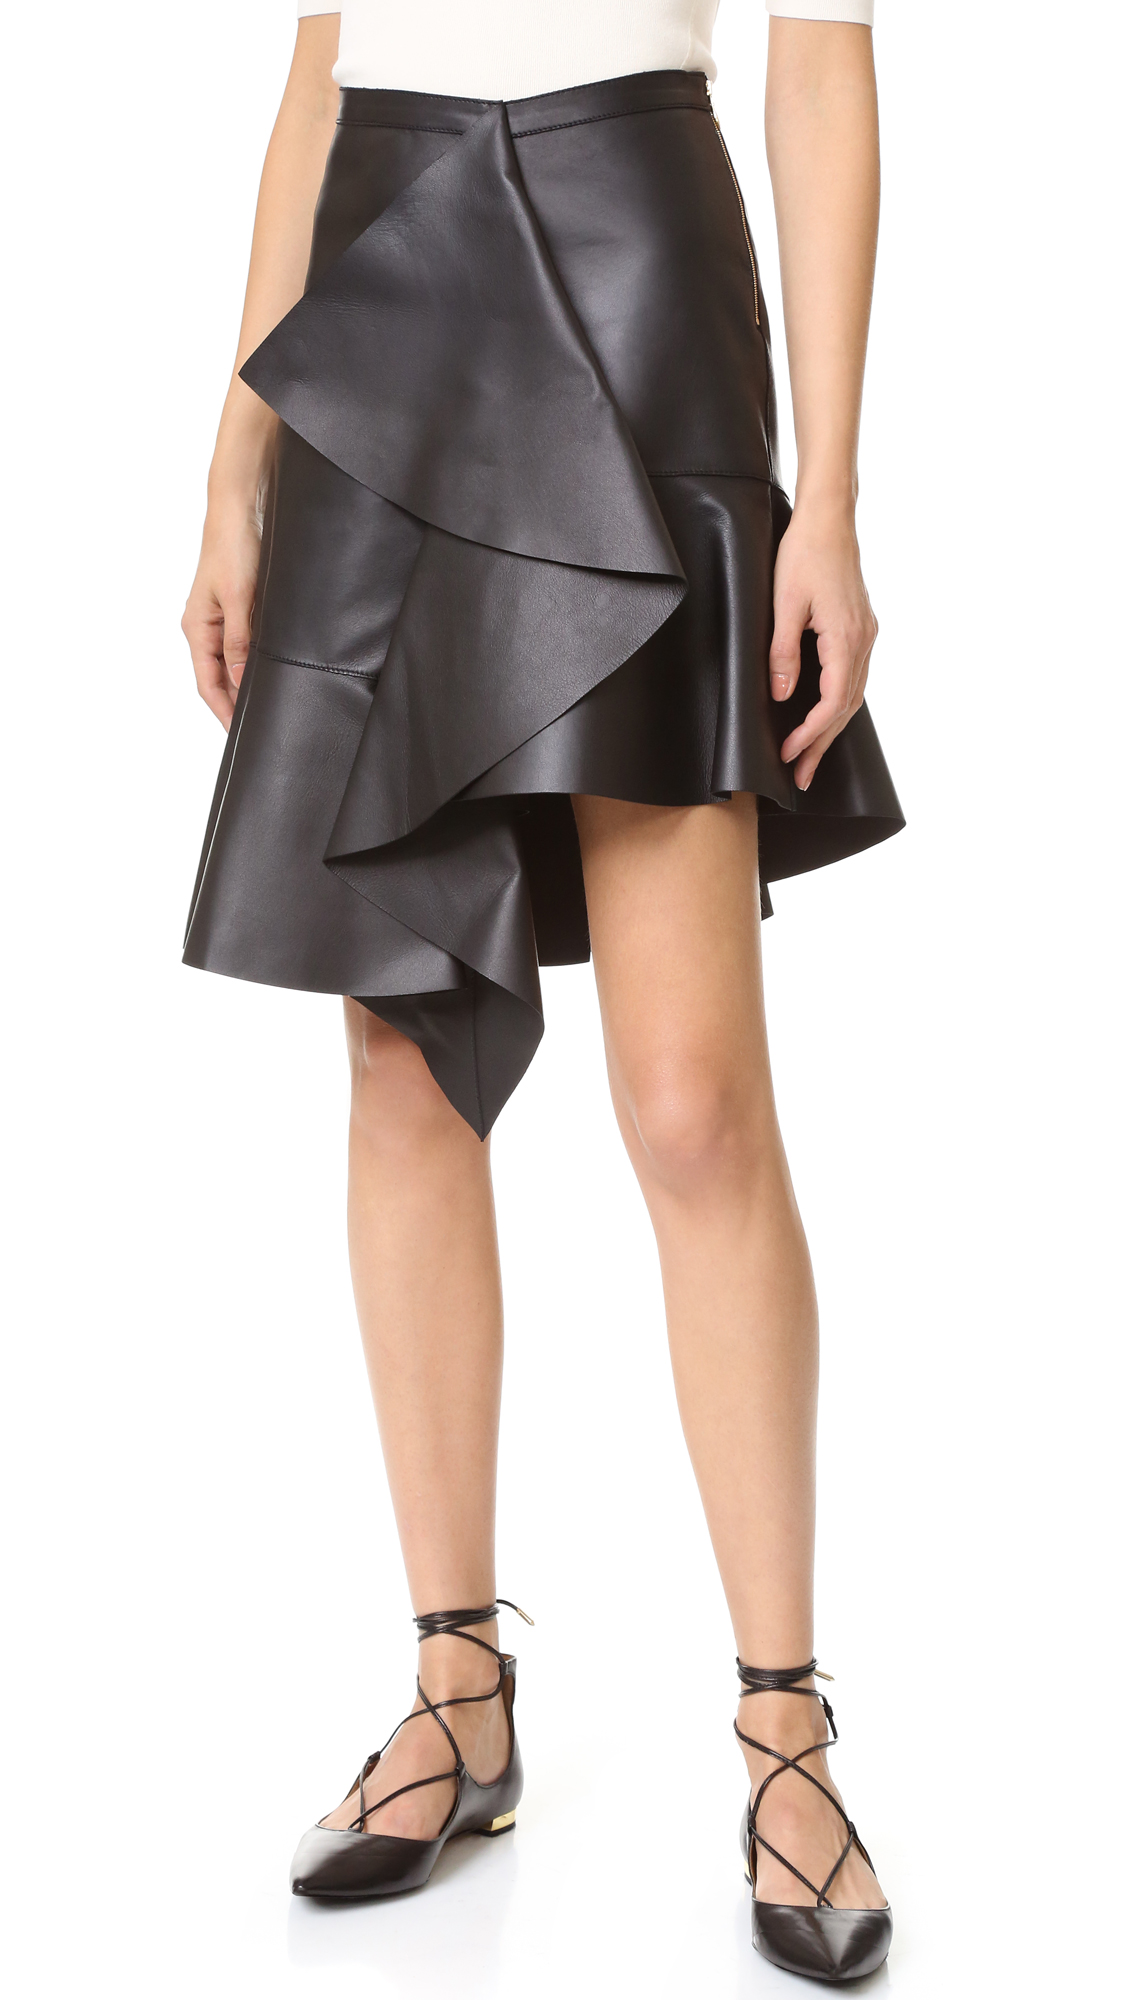 Cascading ruffles lend a charming touch to this supple leather Rochas skirt. Exposed side zip. Unlined. Fabric: Leather. 100% lambskin. Leather clean. Made in Italy. Measurements Length 1: 19.75in / 50cm, to shortest point Length 2: 22.5in / 57cm, to longest